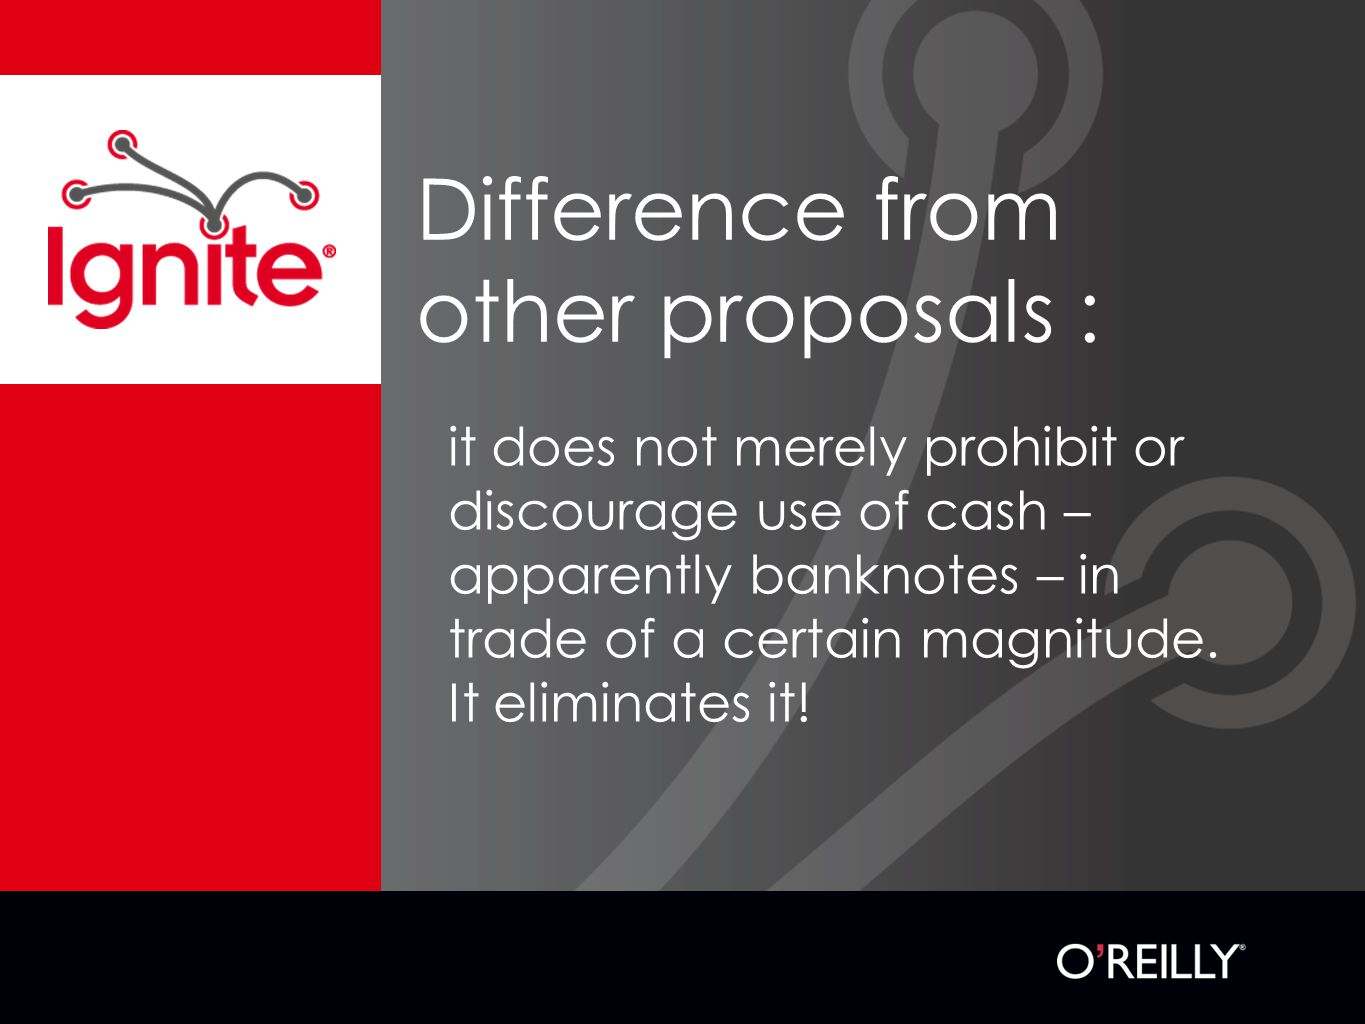 Difference from other proposals : it does not merely prohibit or discourage use of cash – apparently banknotes – in trade of a certain magnitude.